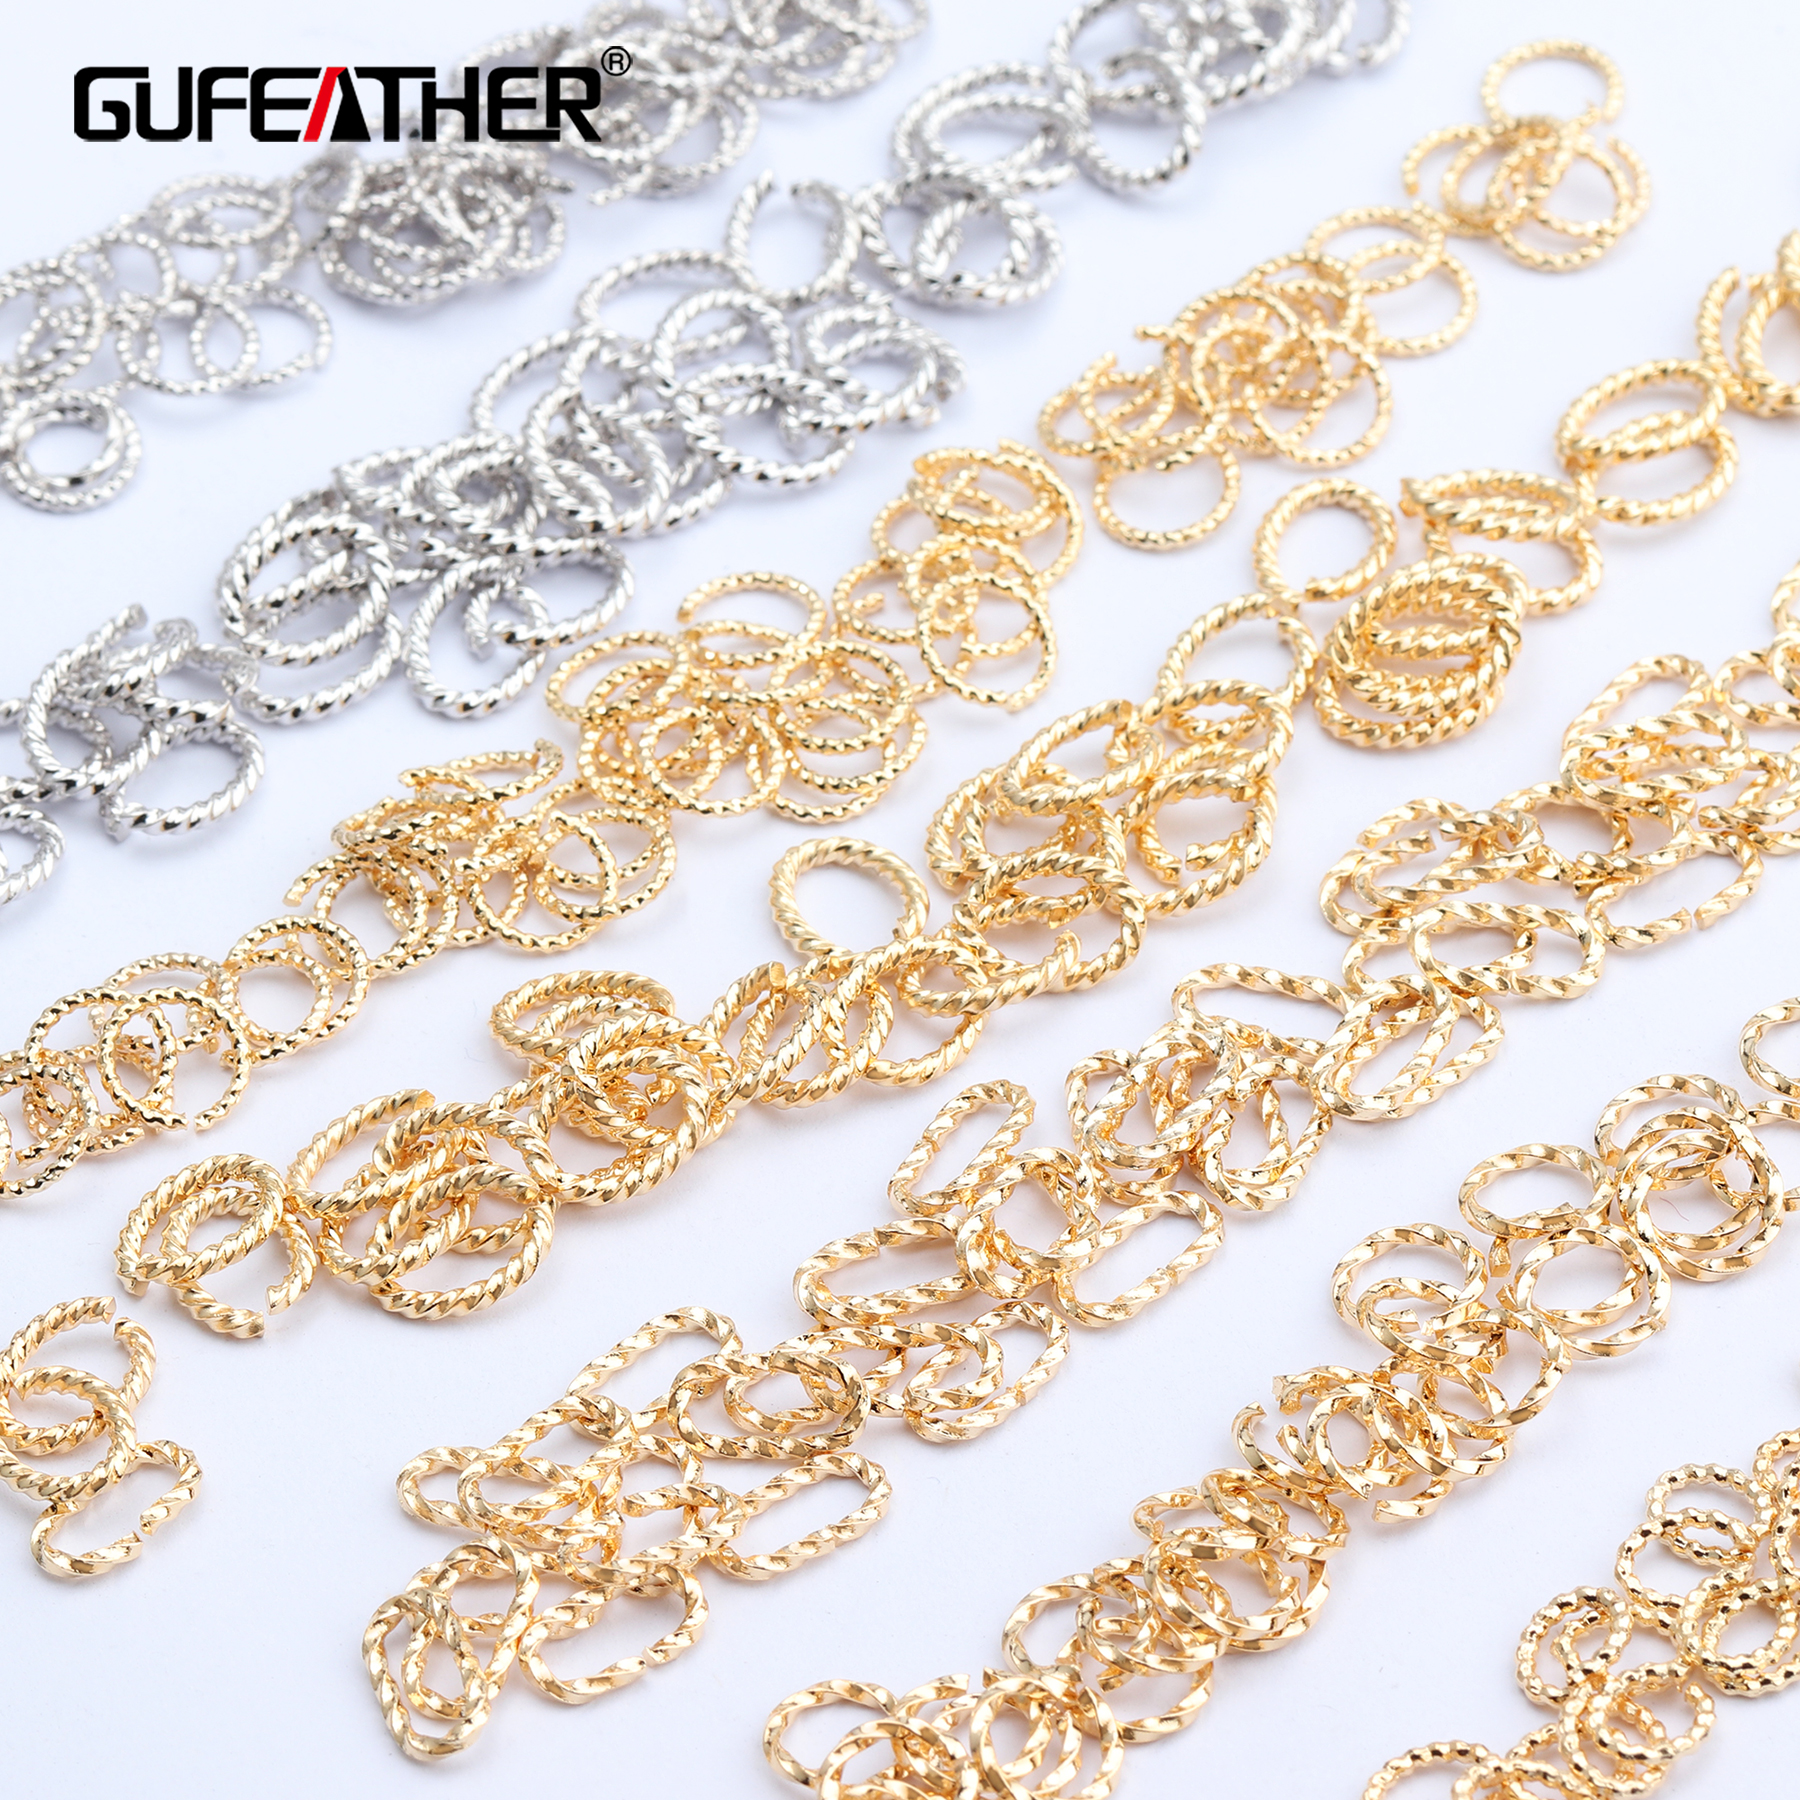 GUFEATHER M603,jewelry Accessories,18k Gold Plated,rhodium Plated,handmade,jump Ring,diy Earring Necklace,jewelry Making,20g/lot